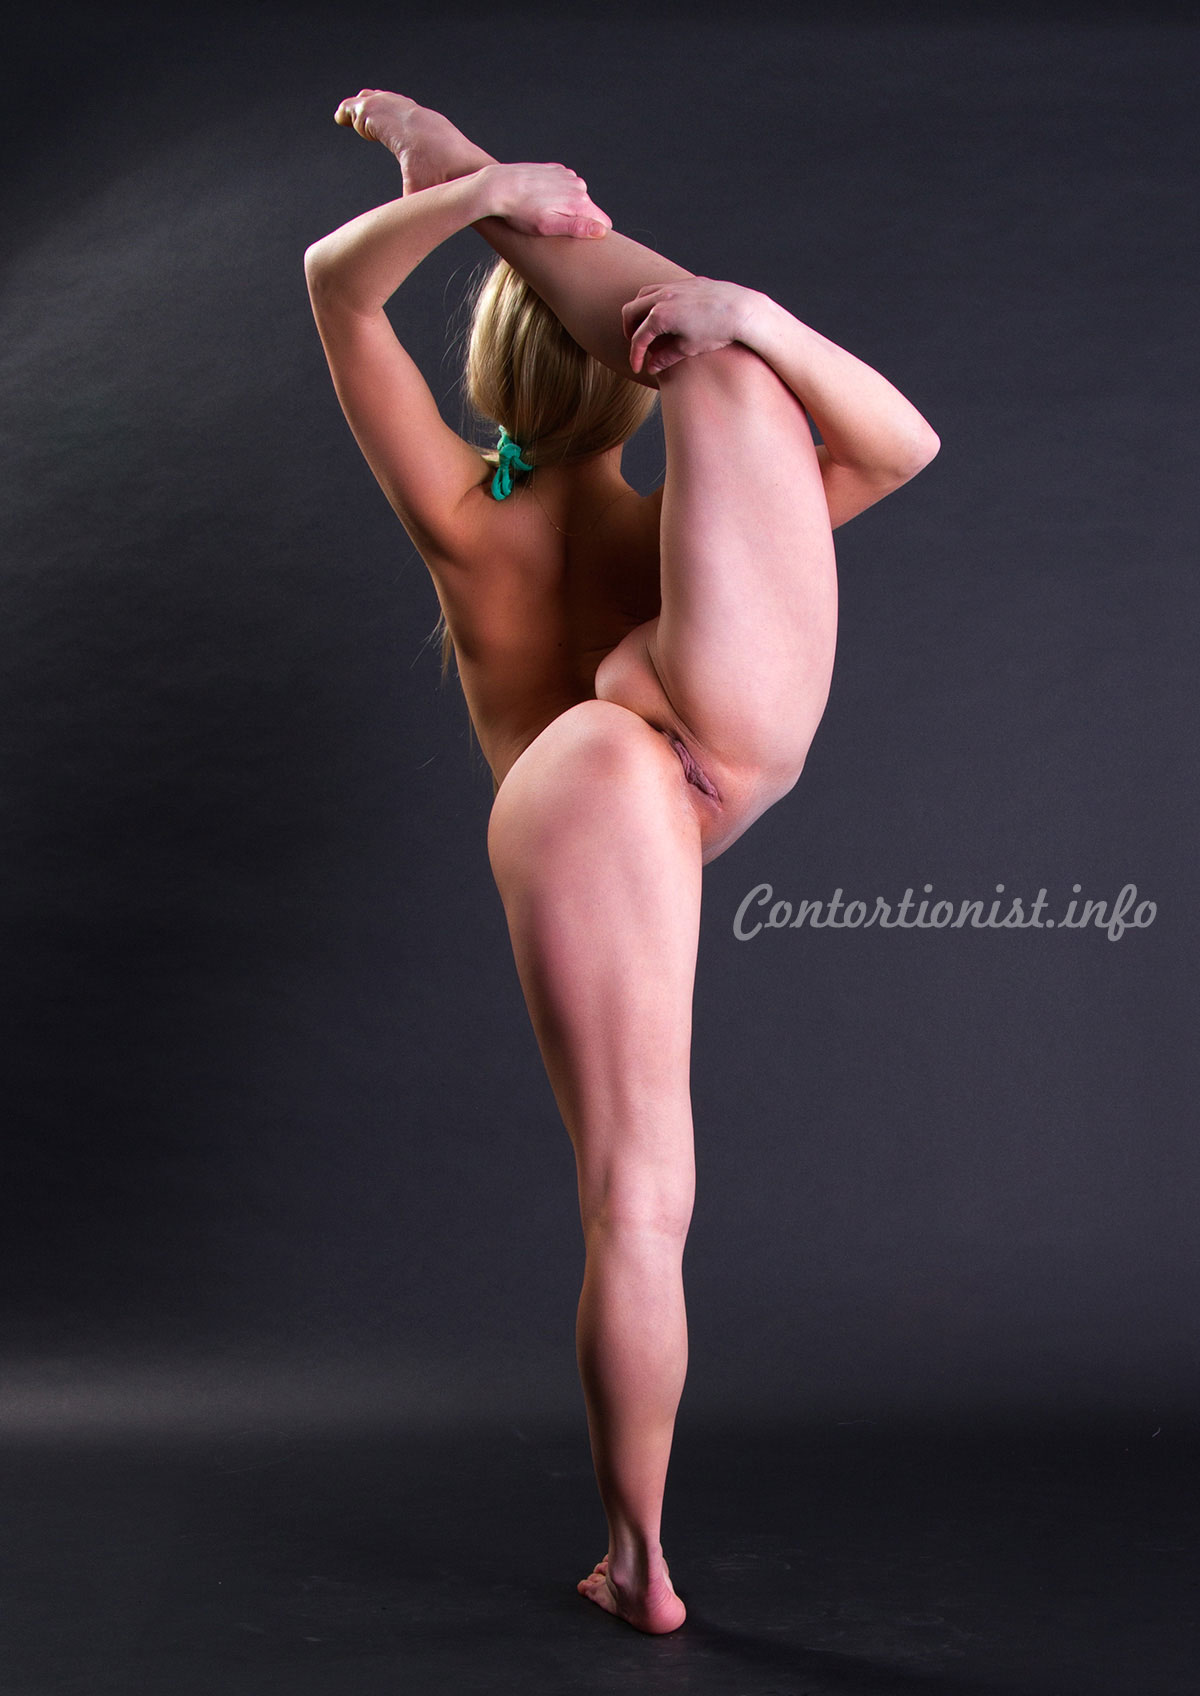 Think, nude contortionist girls sex suggest you